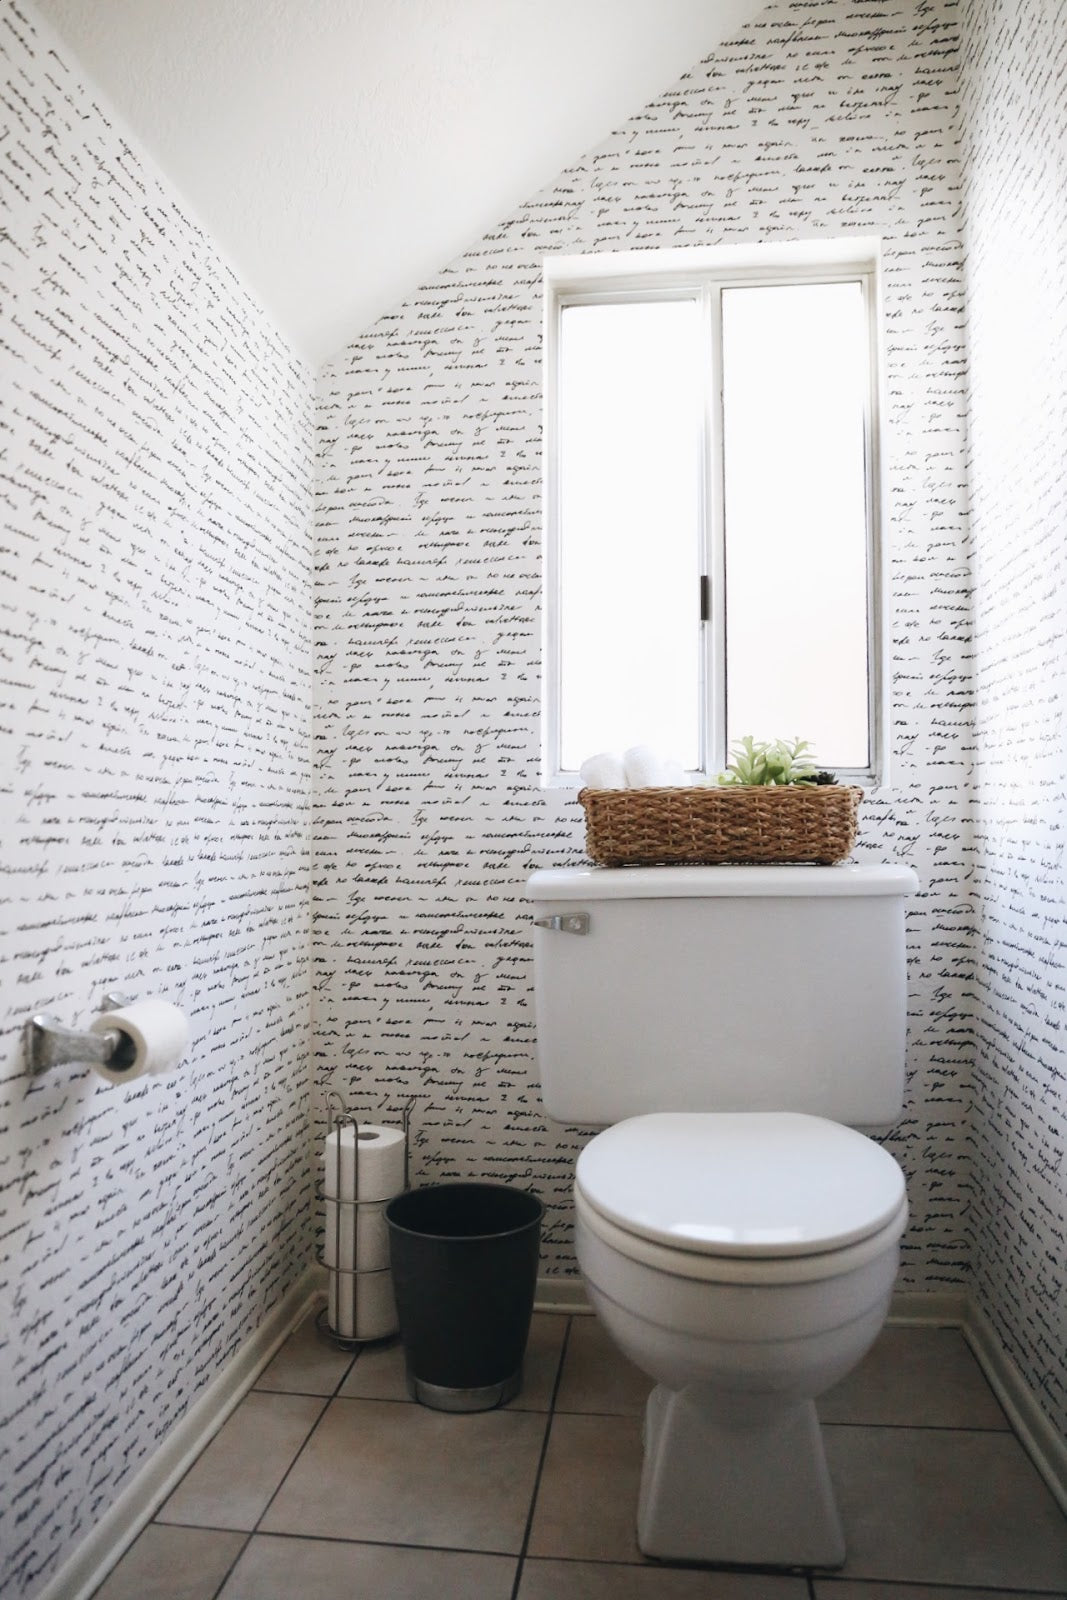 Powder Room Transformation Using Removable Wallpaper From Wallsneedlove Merricks Art